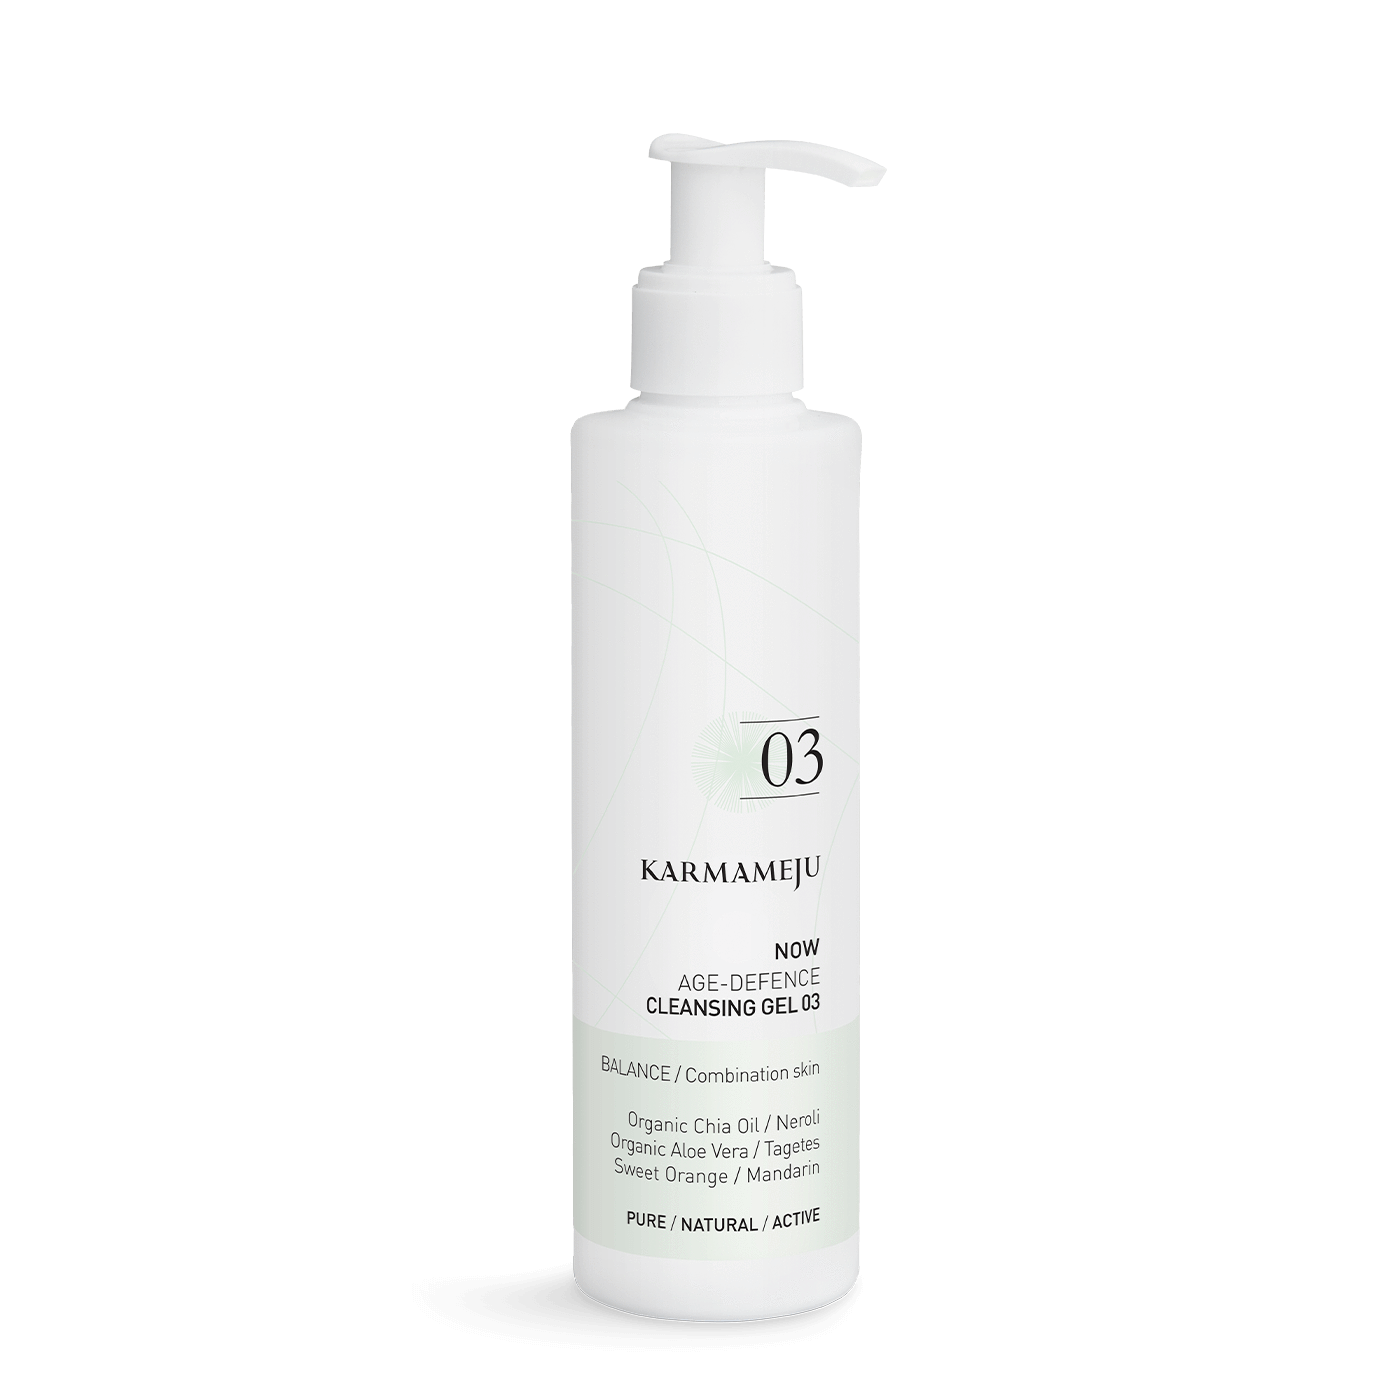 Karmameju NOW / CLEANSING GEL 03